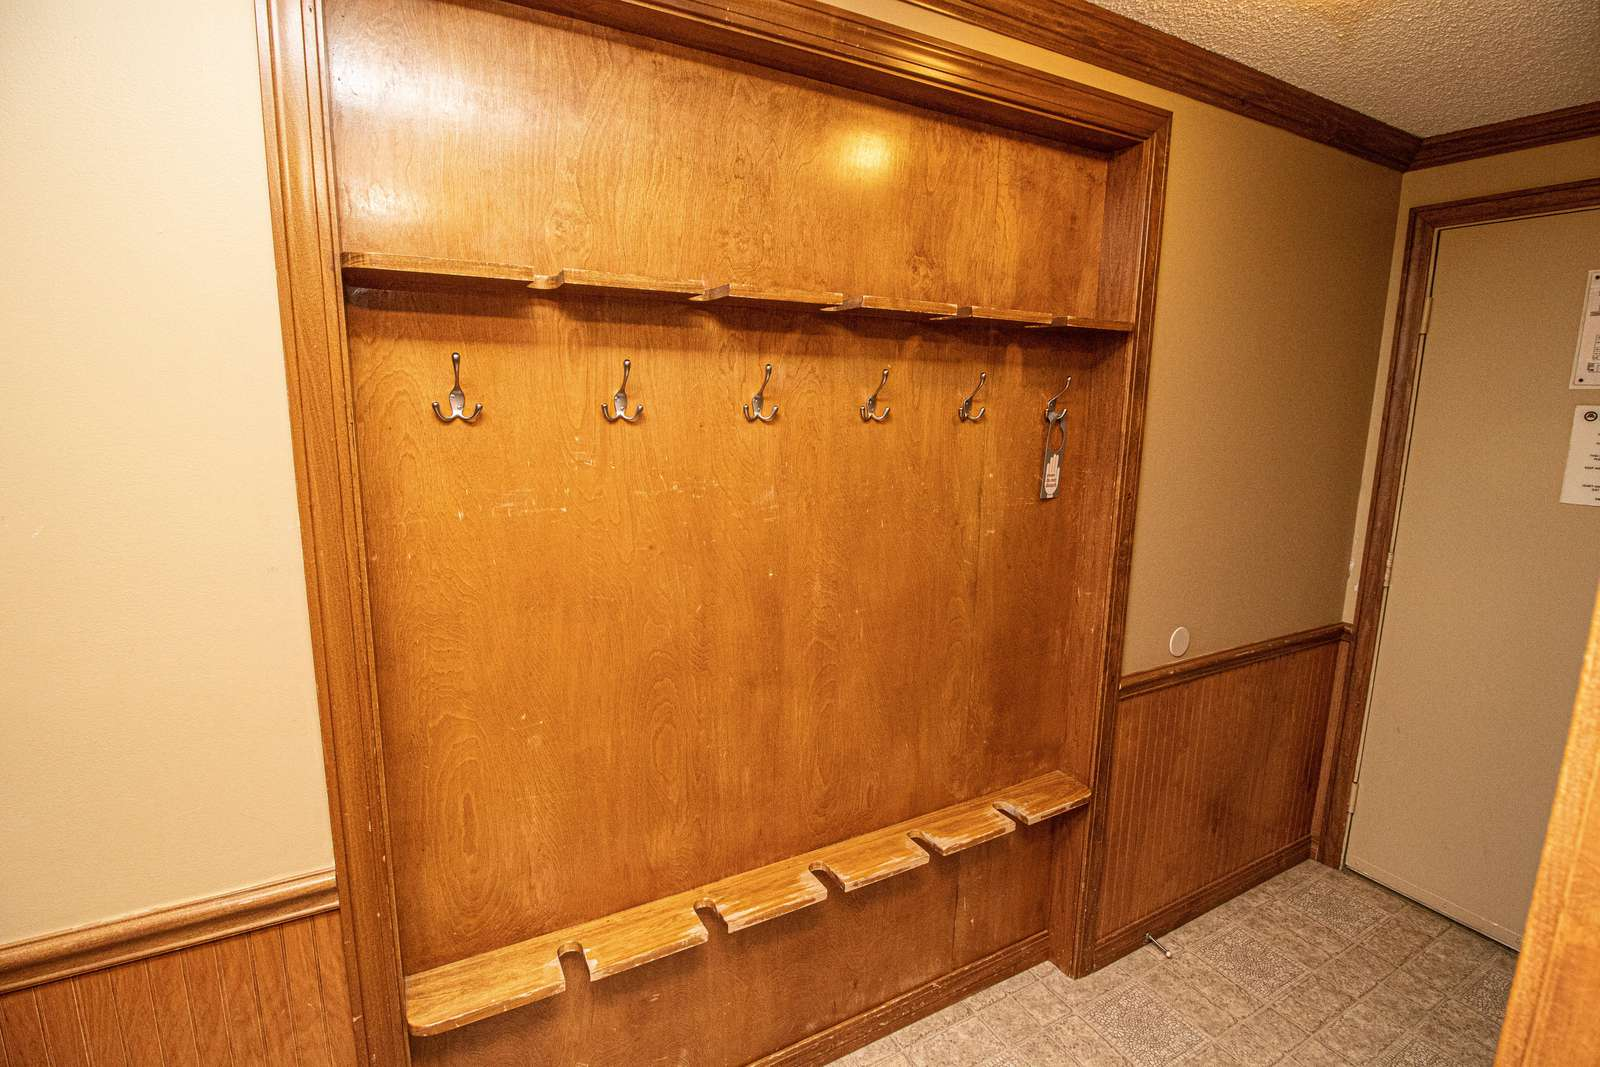 Recessed ski rack in hallway - securely store your gear inside the condo!